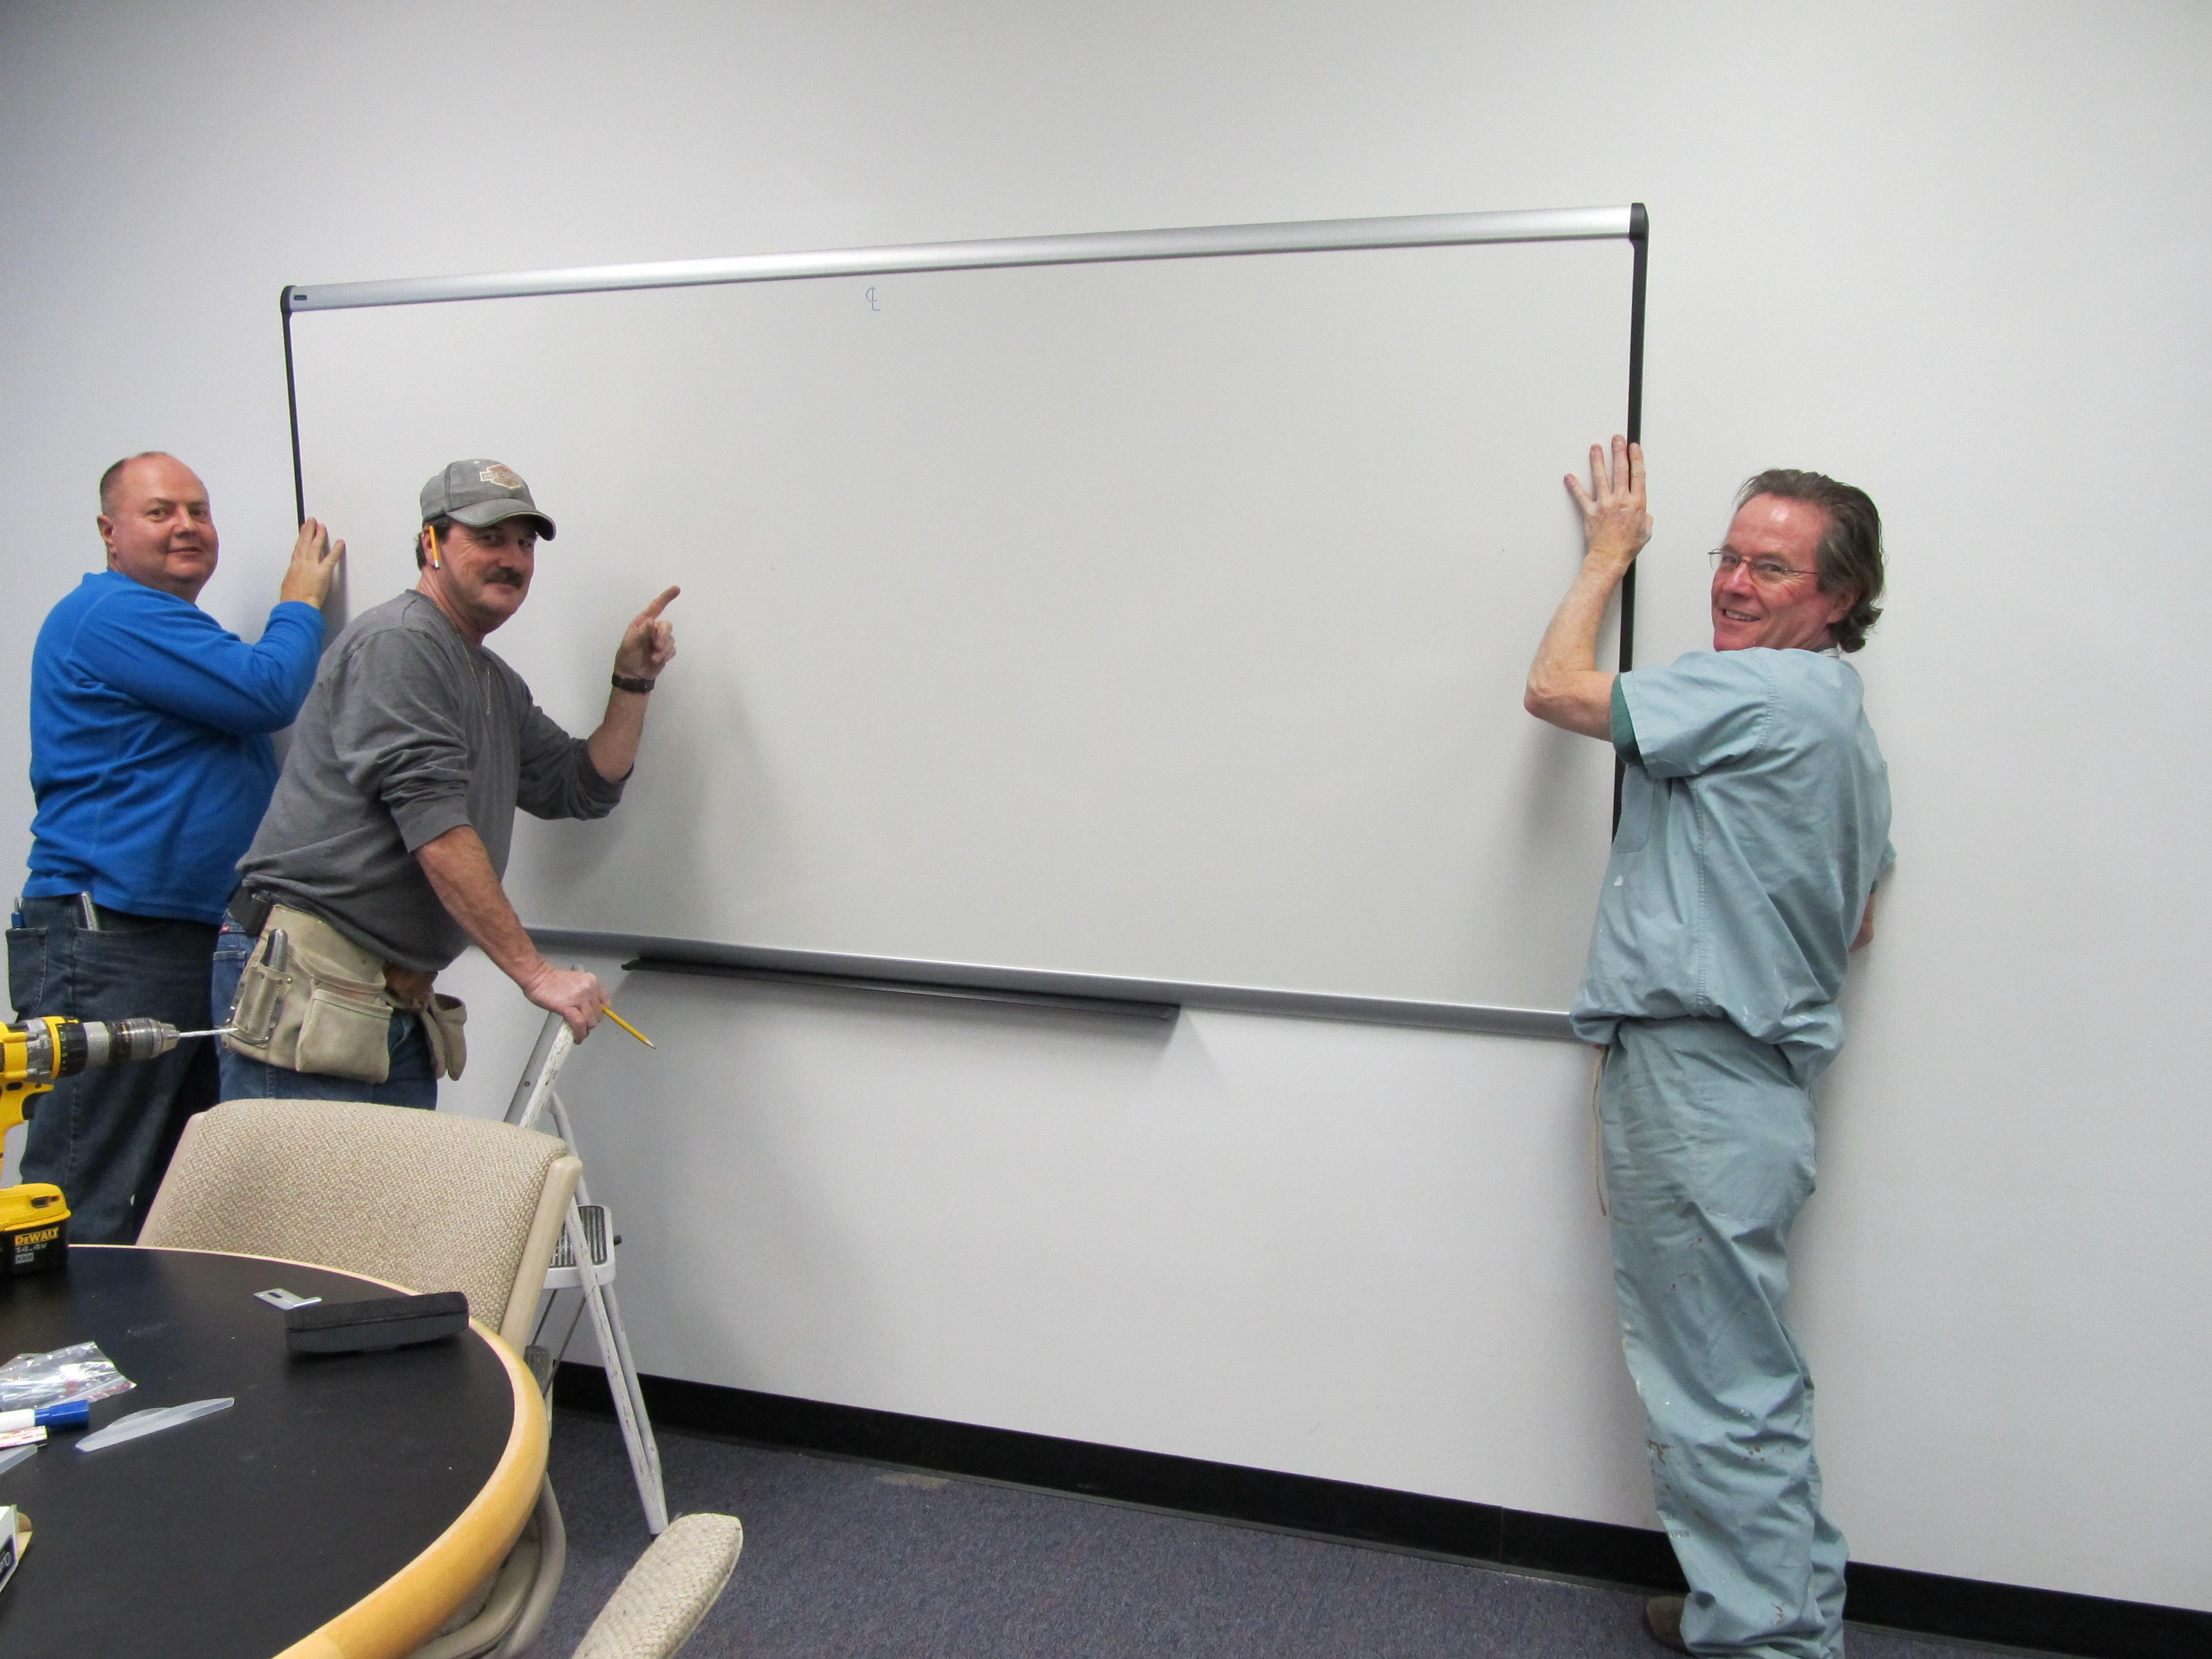 installing whiteboards in classrooms essay Dry erase whiteboards a wide selection of high quality dry erase whiteboards in many sizes and styles perfect for the classroom, office or home.